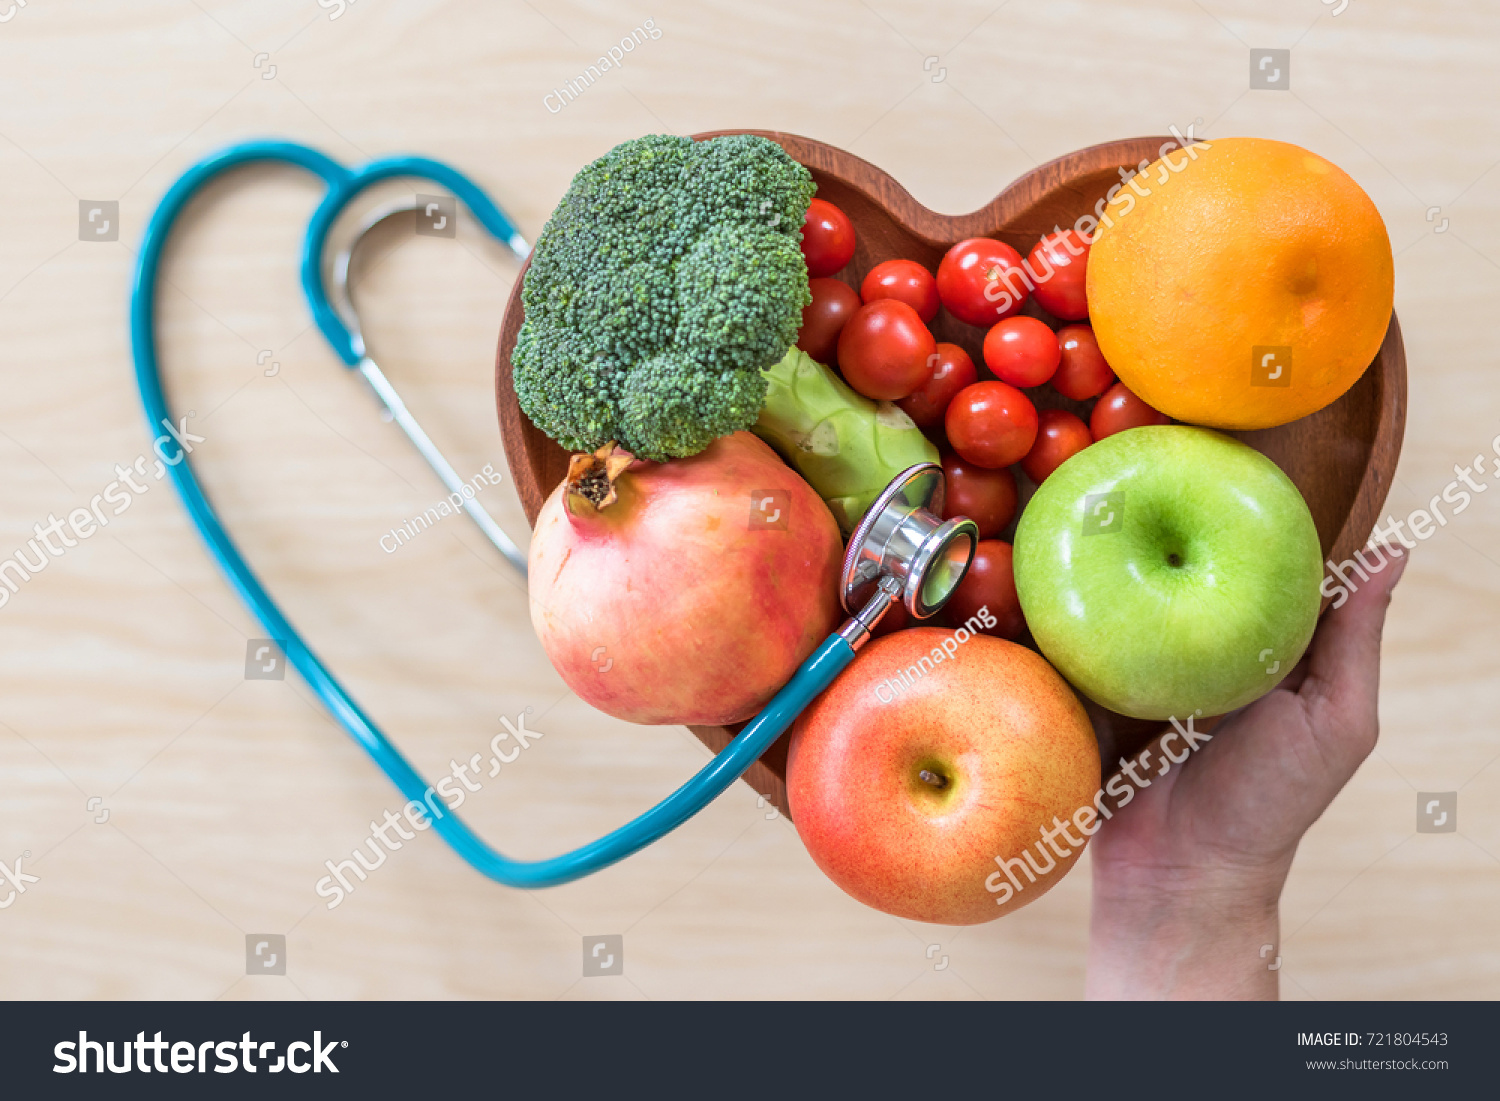 Healthy Eating for a Healthy Weight - Healthy Weight, Nutrition, and  Physical Activity - CDC